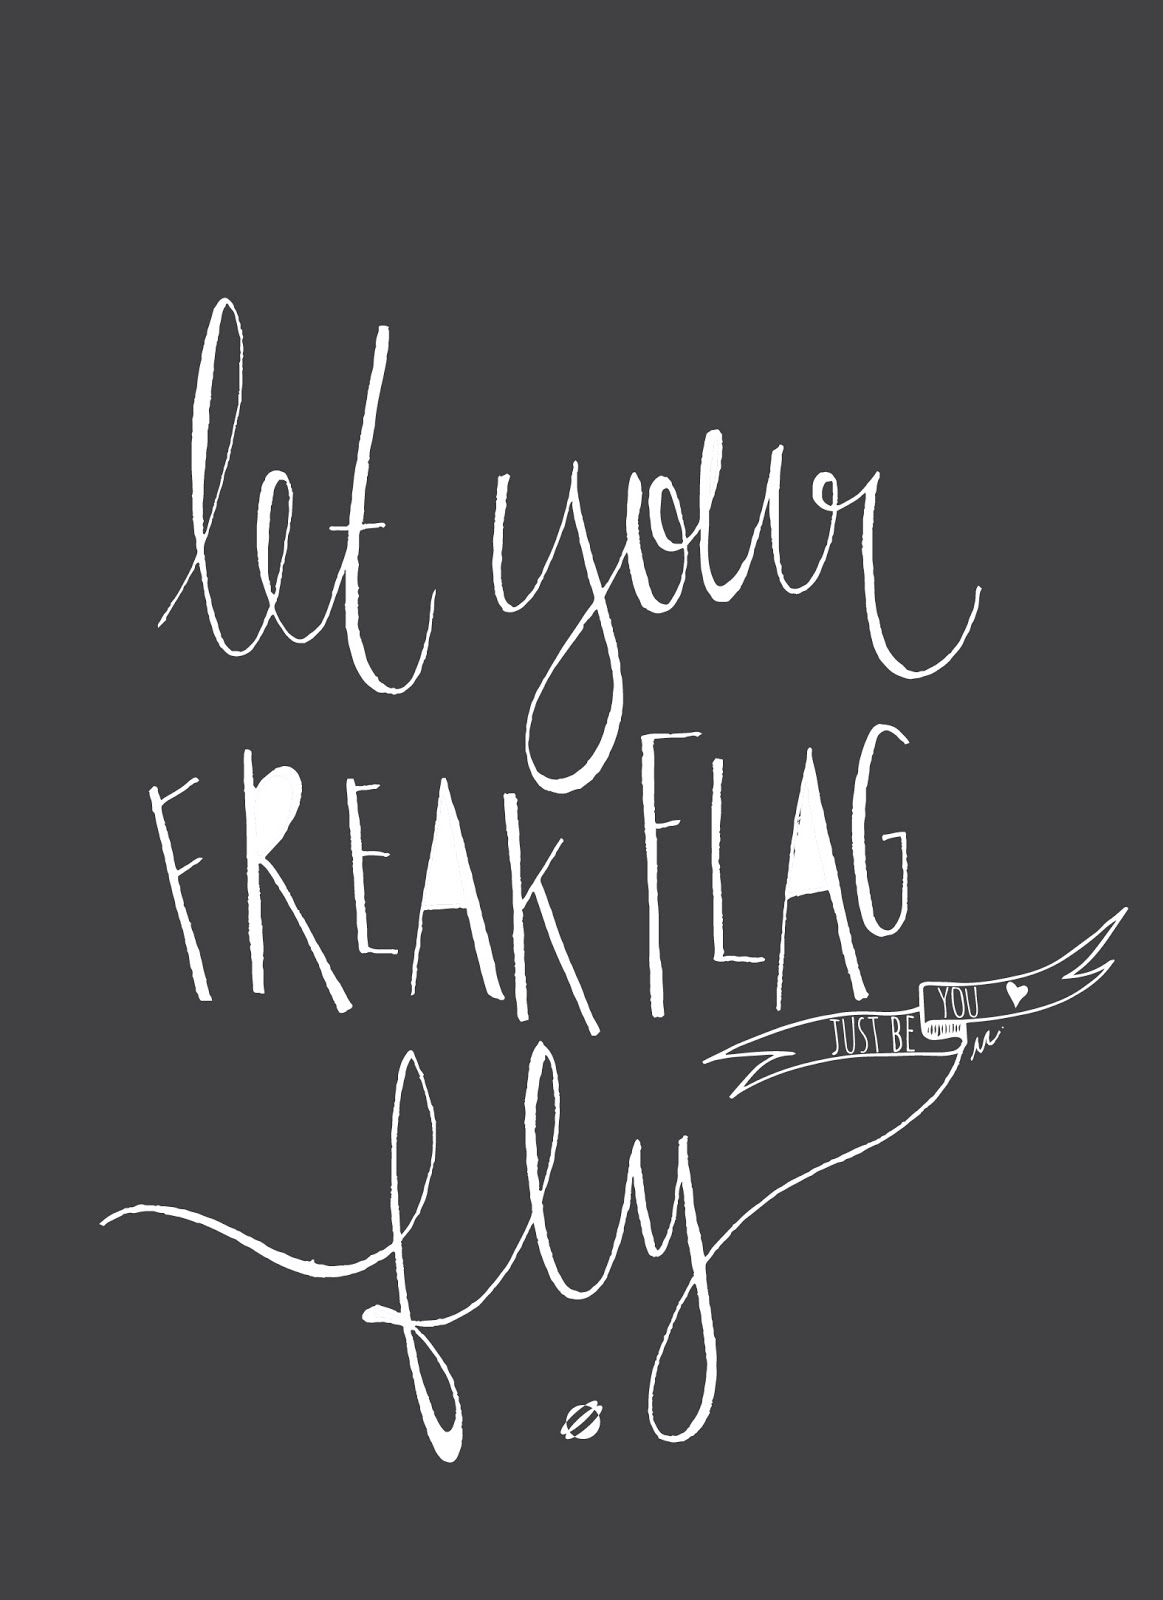 LostBumblebee ©2014 Freak Flag Handlettered Free Printable - Personal Use Only